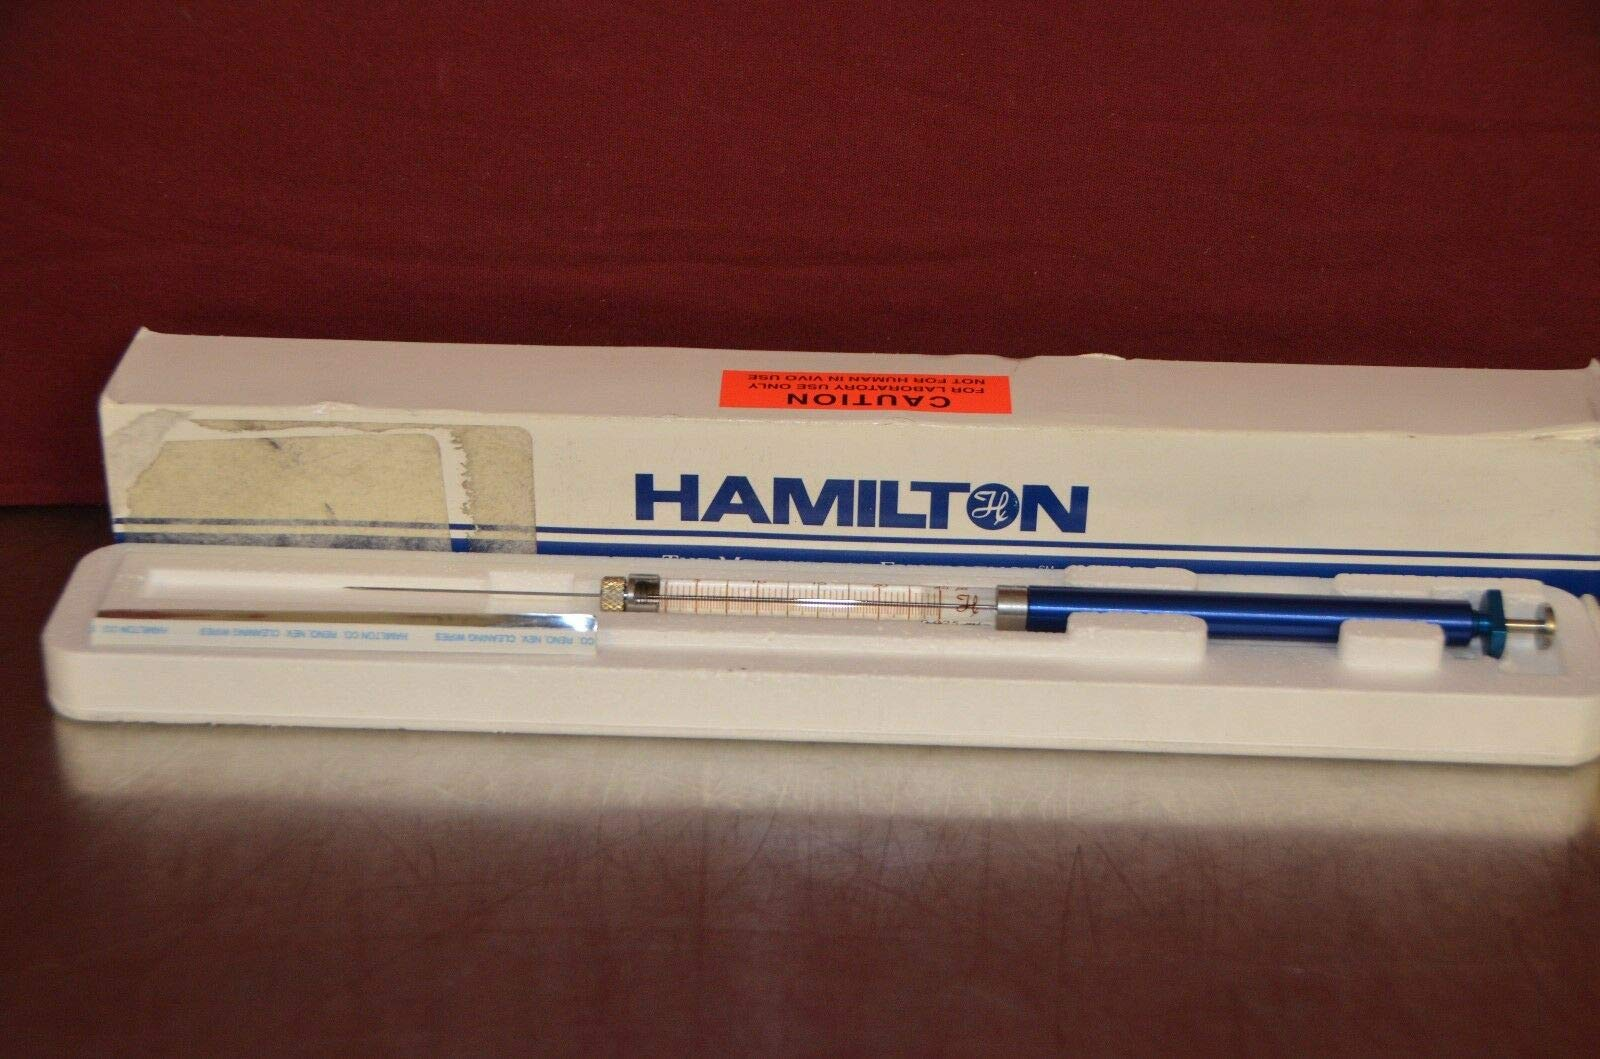 labtechsales Hamilton 1802RN 1800 Series GASTIGHT 25 uL Removable Needle Syringe by labtechsales